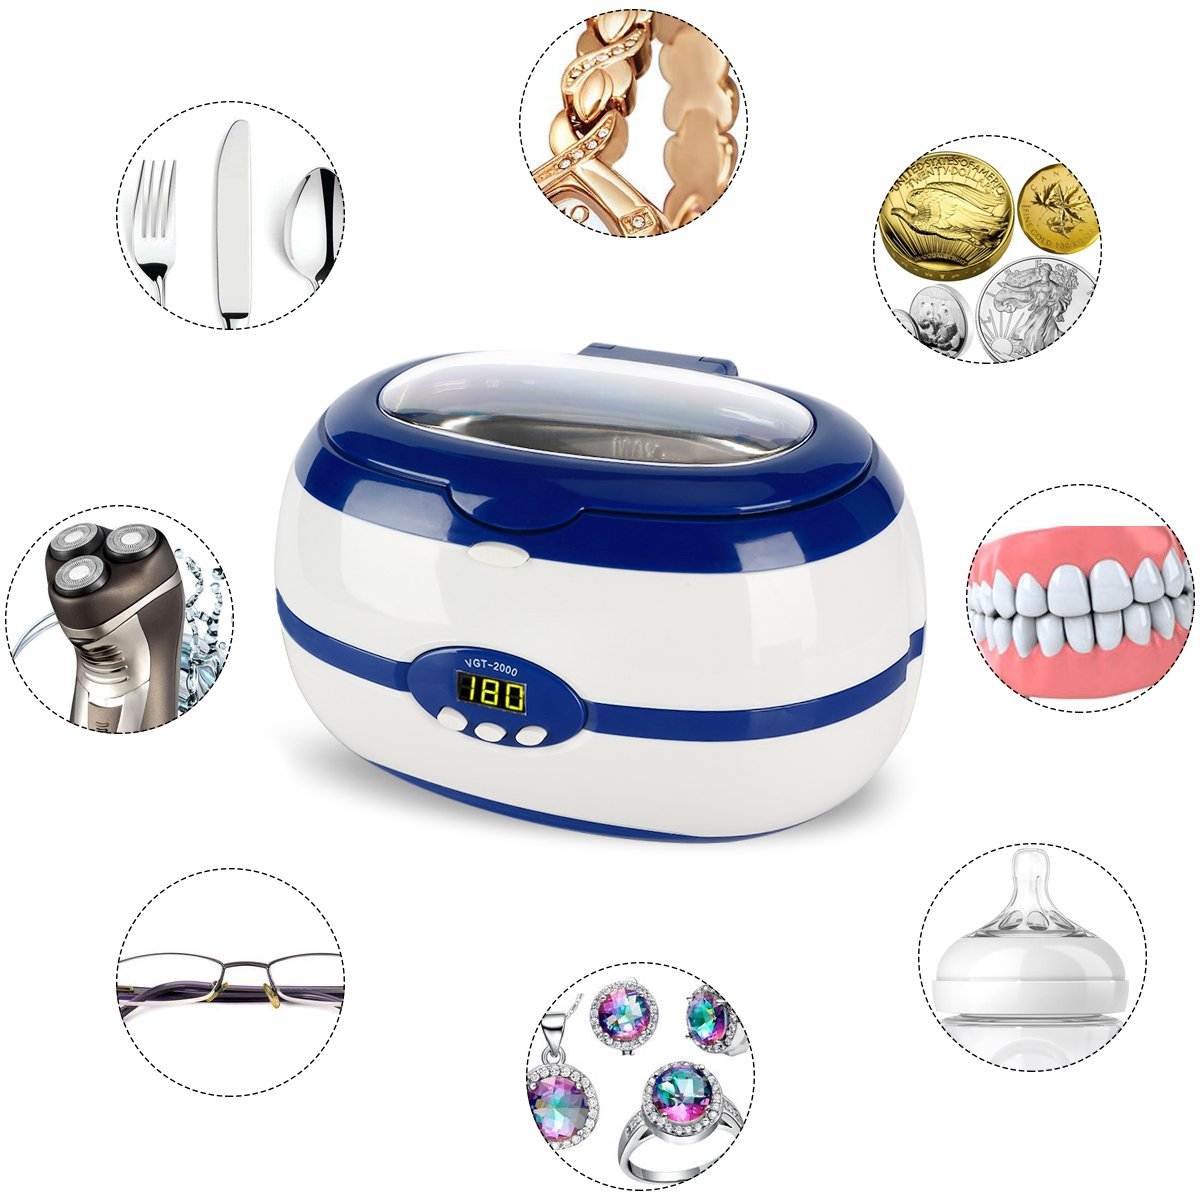 Ultrasonic Cleaner Jewelry Cleaner Denture Cleaner Glass Cleaner with DEGASSING Function Ultrasonic Cleaner for Jewellery Lenses Watches Etc with Smart Digital Timer. FDA Approved 20 Oz Blue